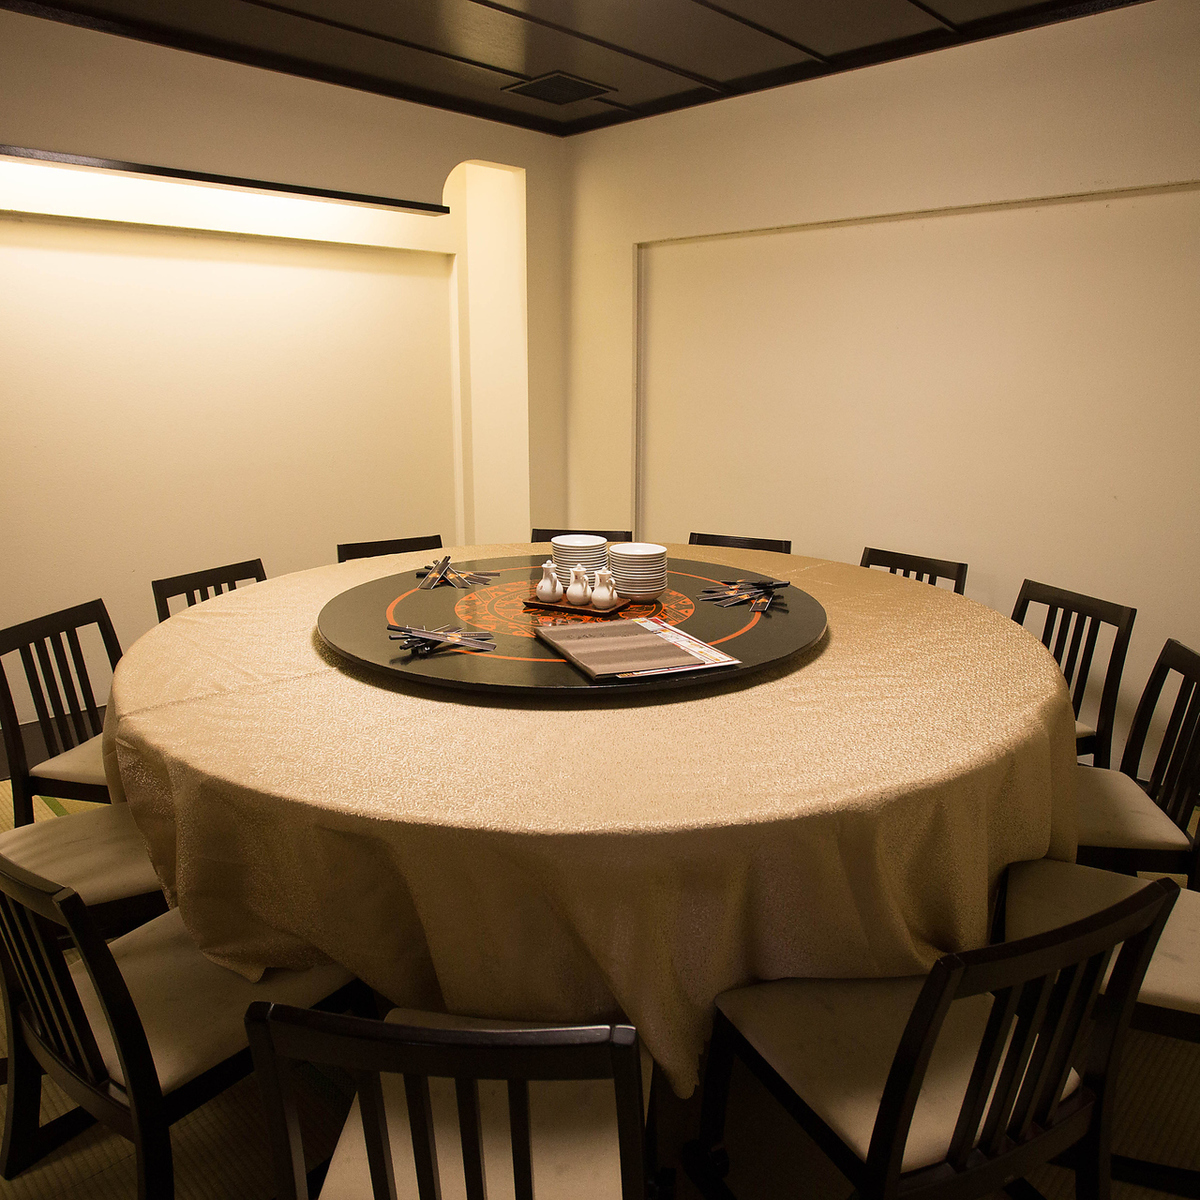 2 people ~ group-like complete private room!